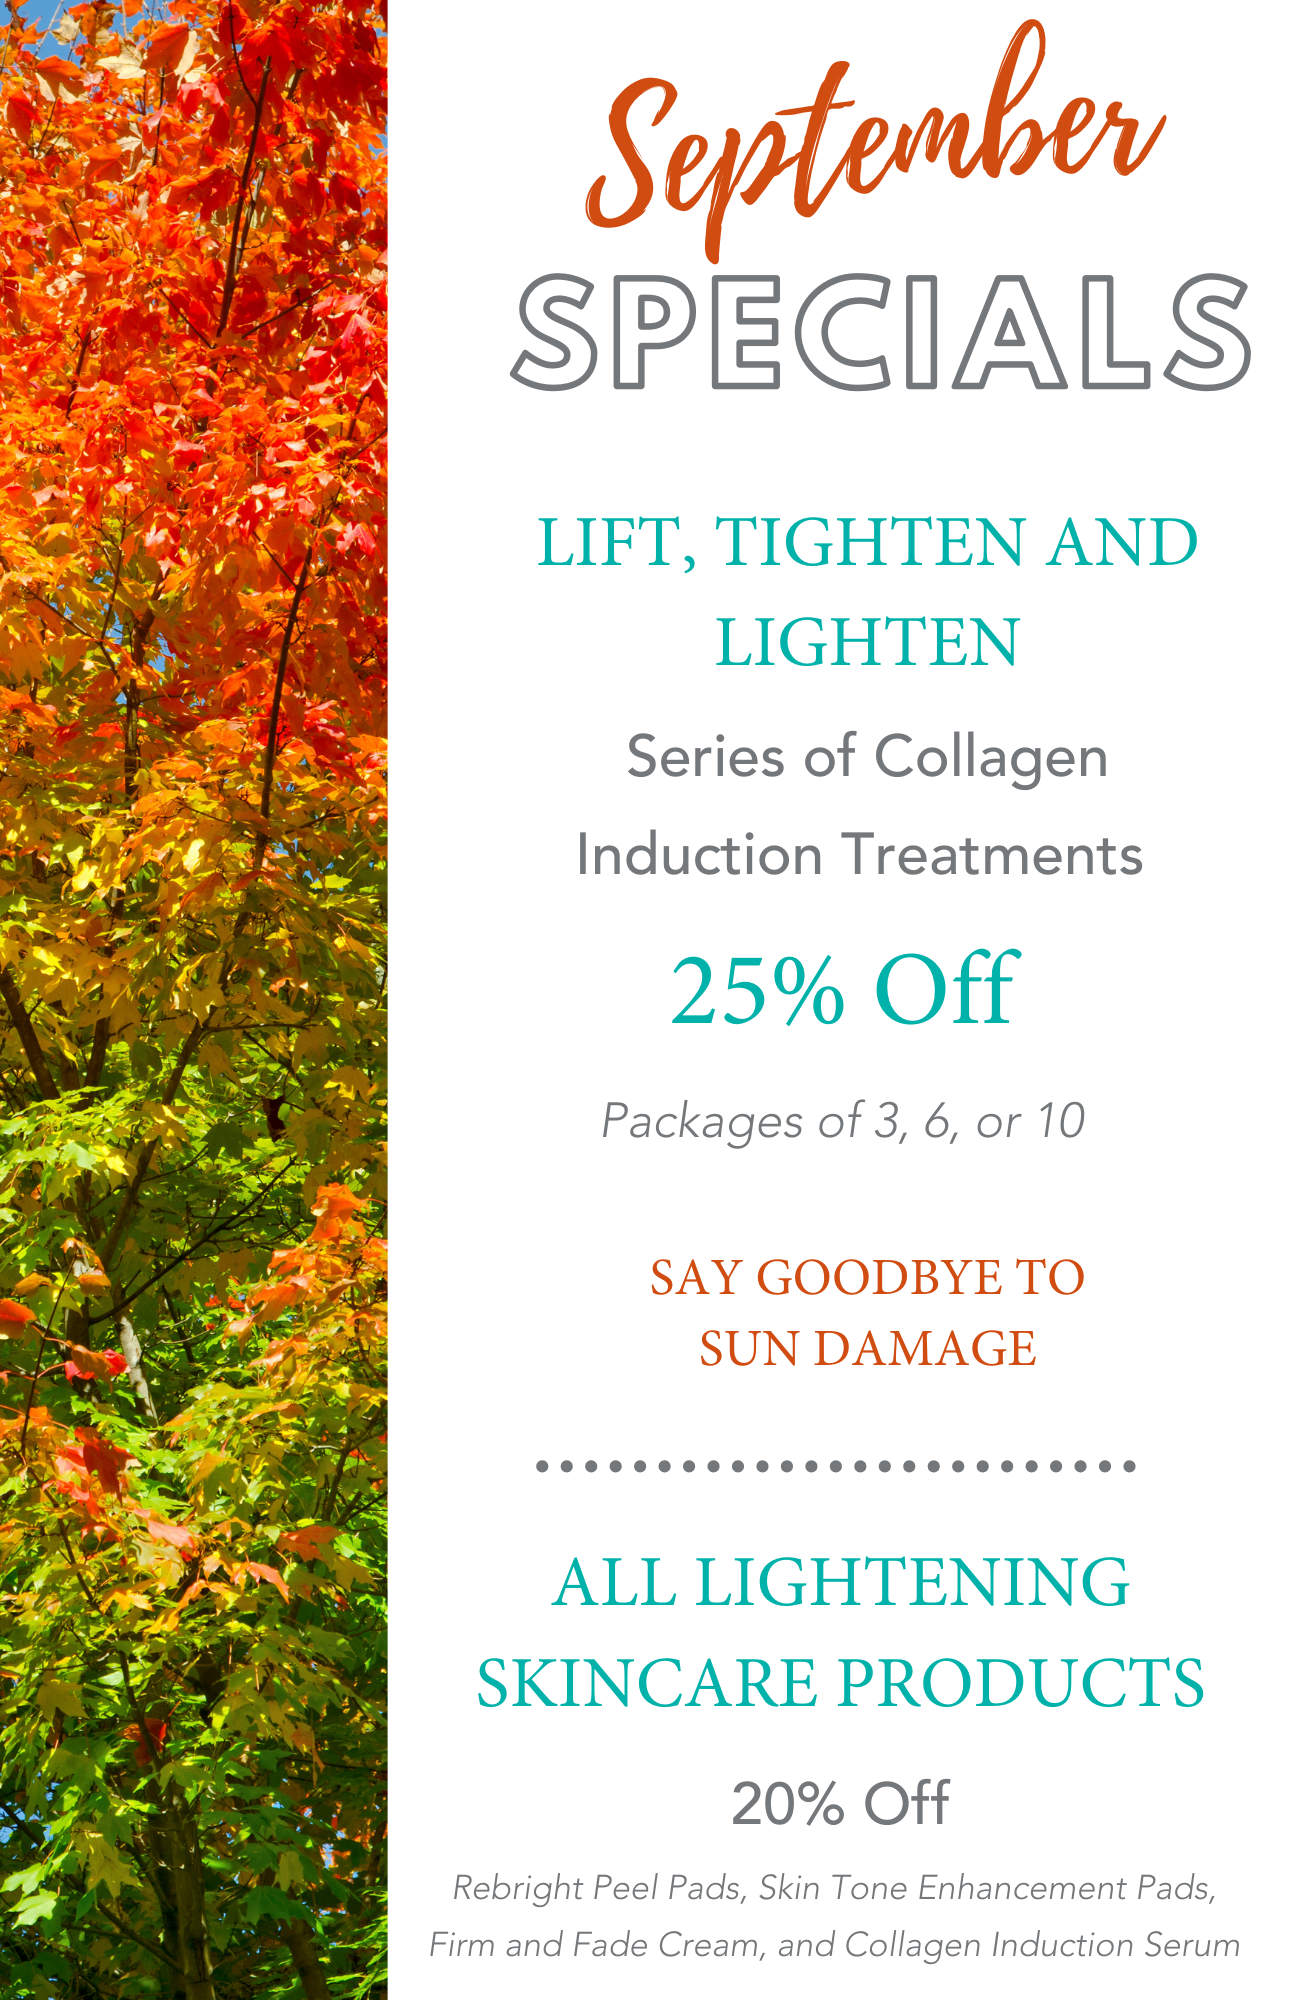 image of Skin Perfect Spas September specials